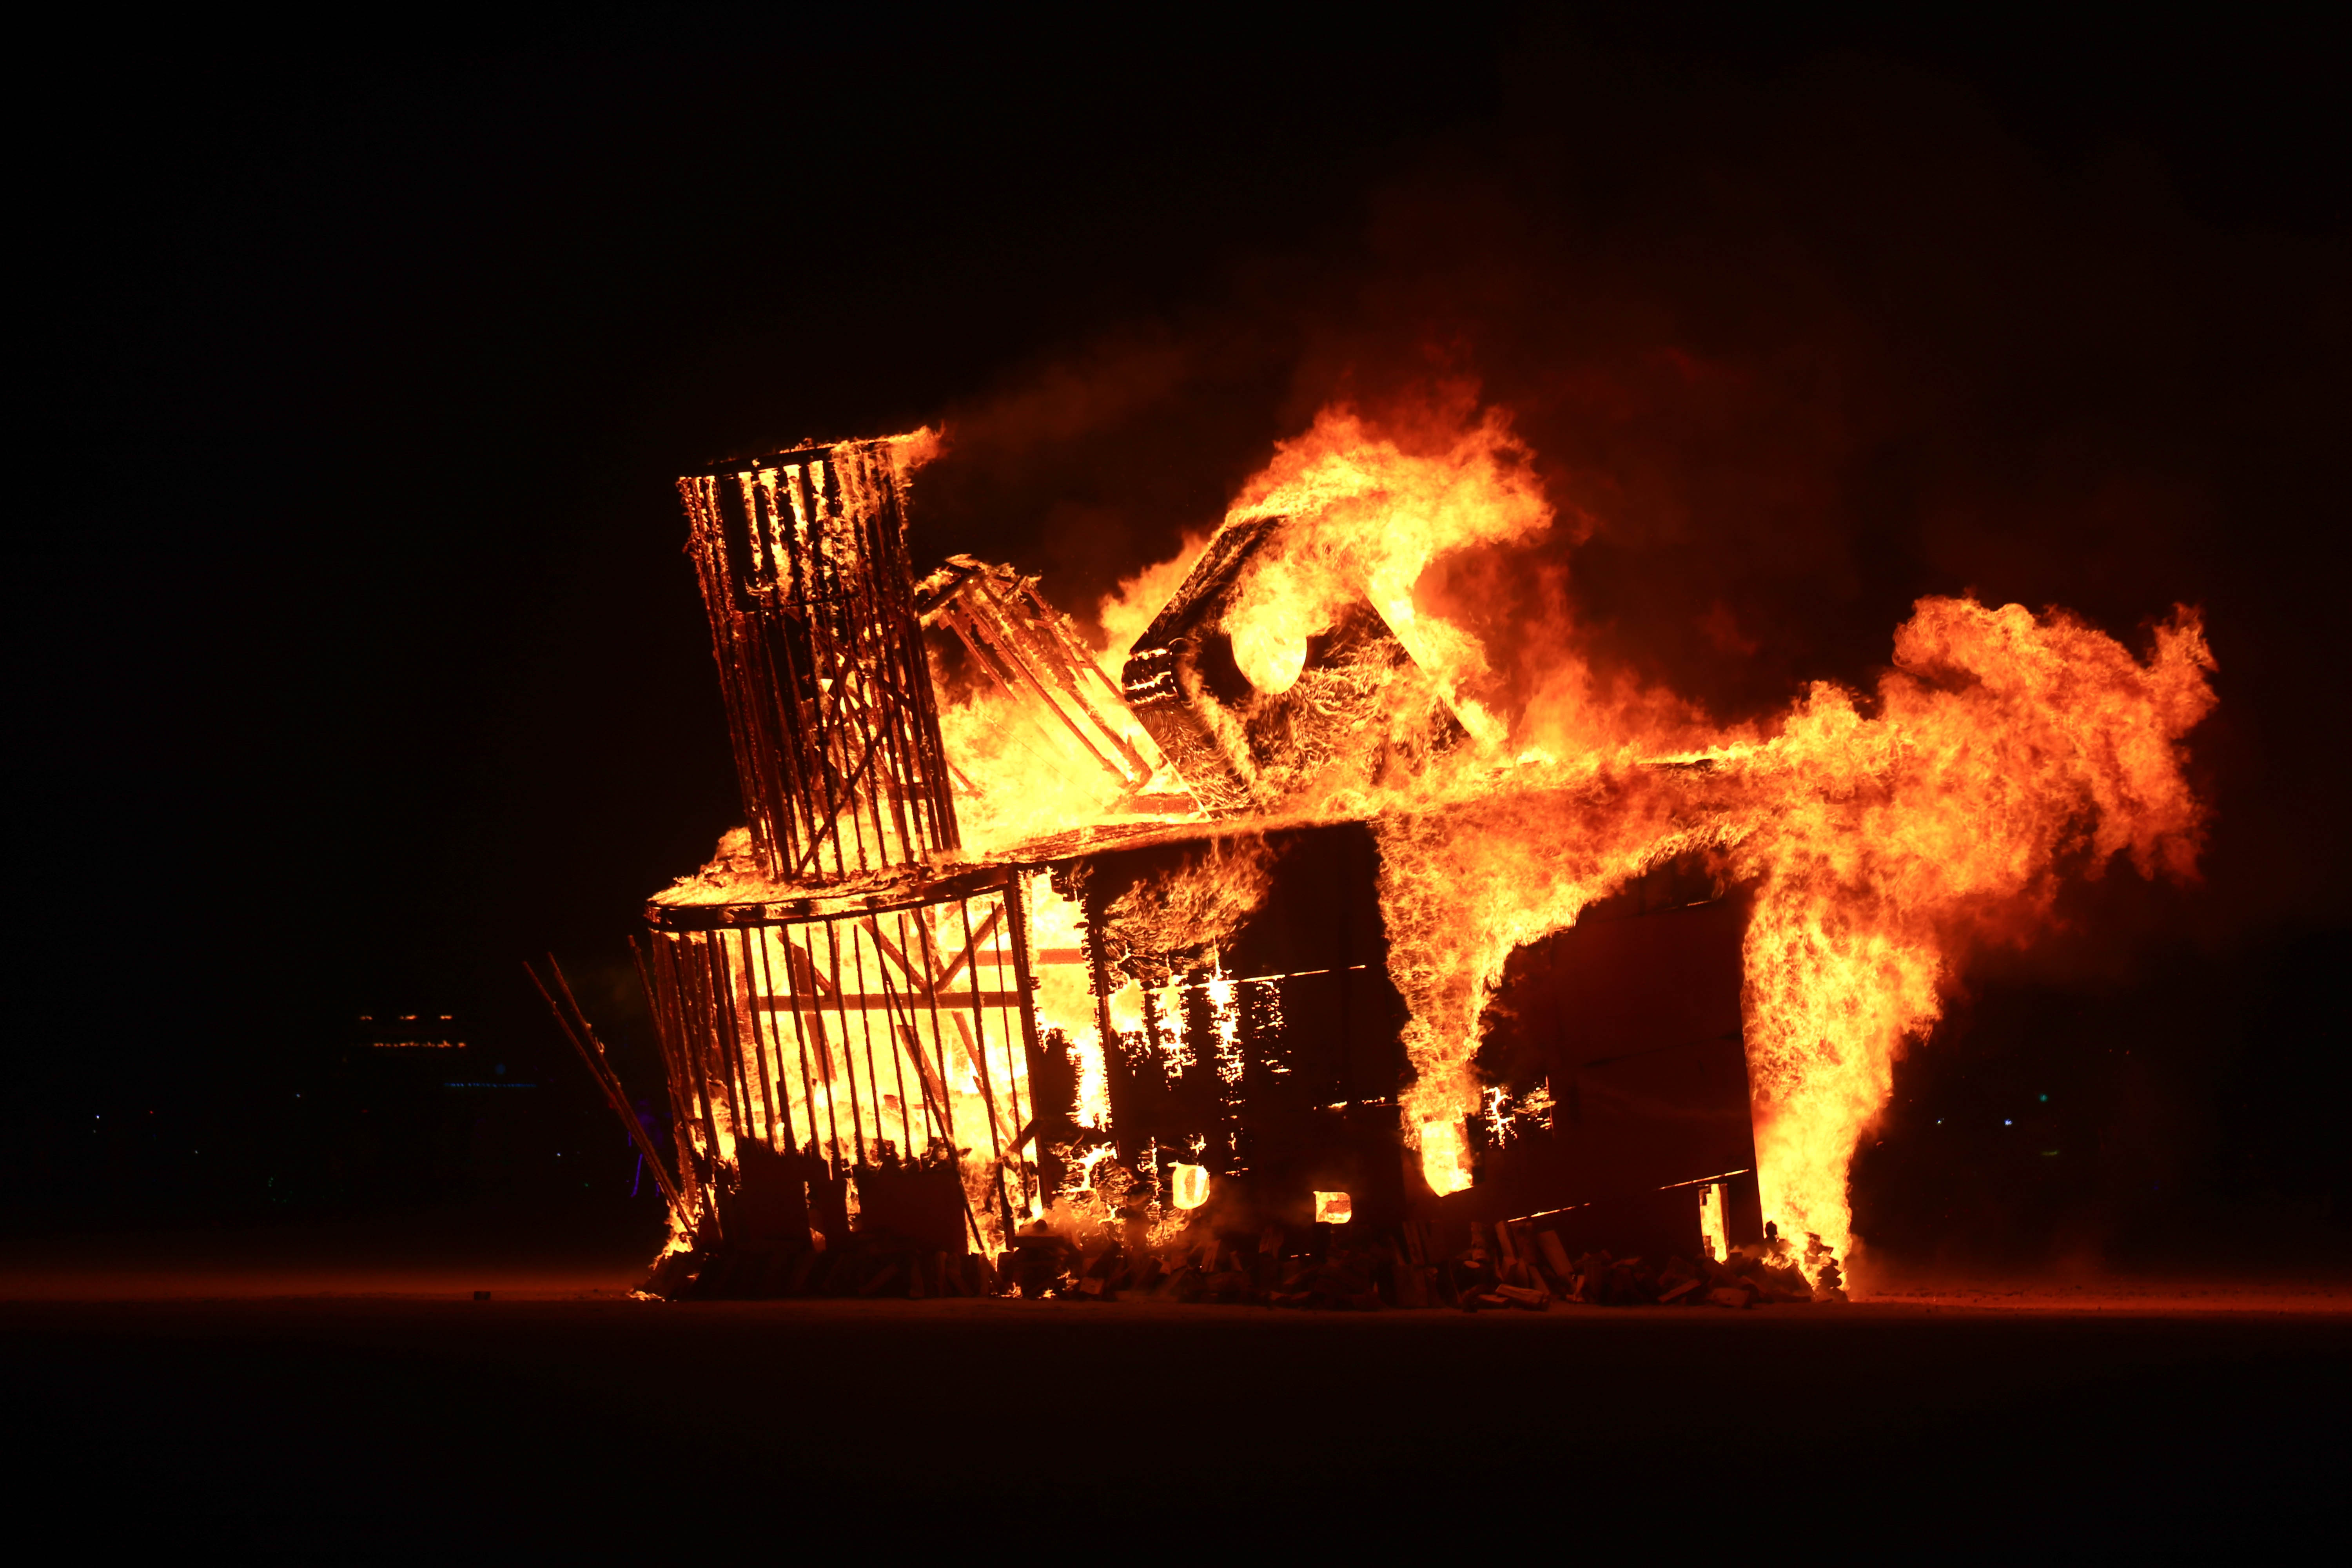 The Burning Man burn